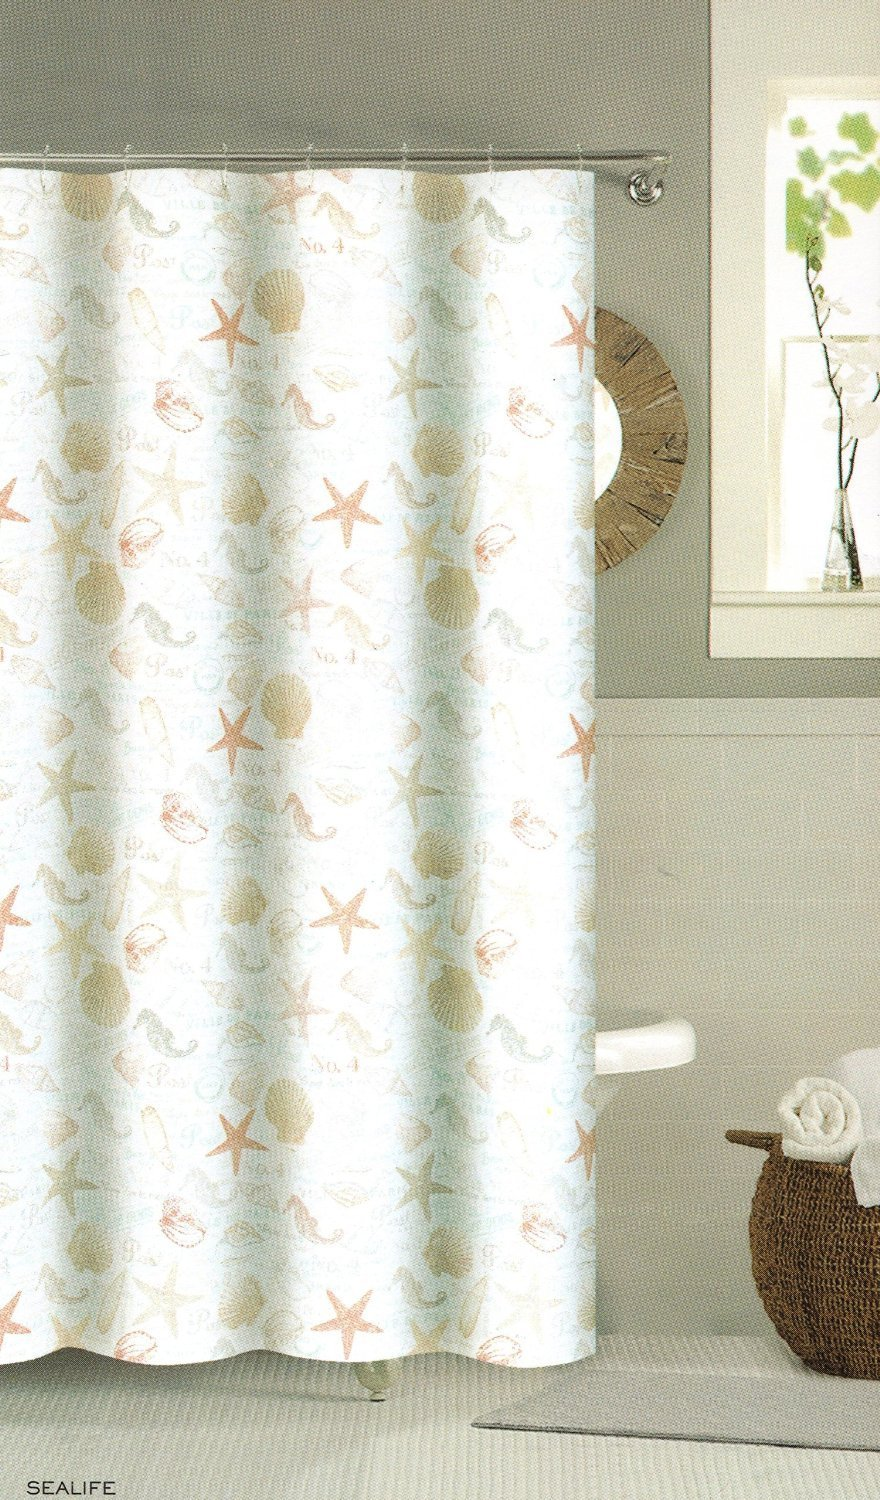 Vintage shower curtains - Fabric French Script Writing Shower Curtain With Seashells